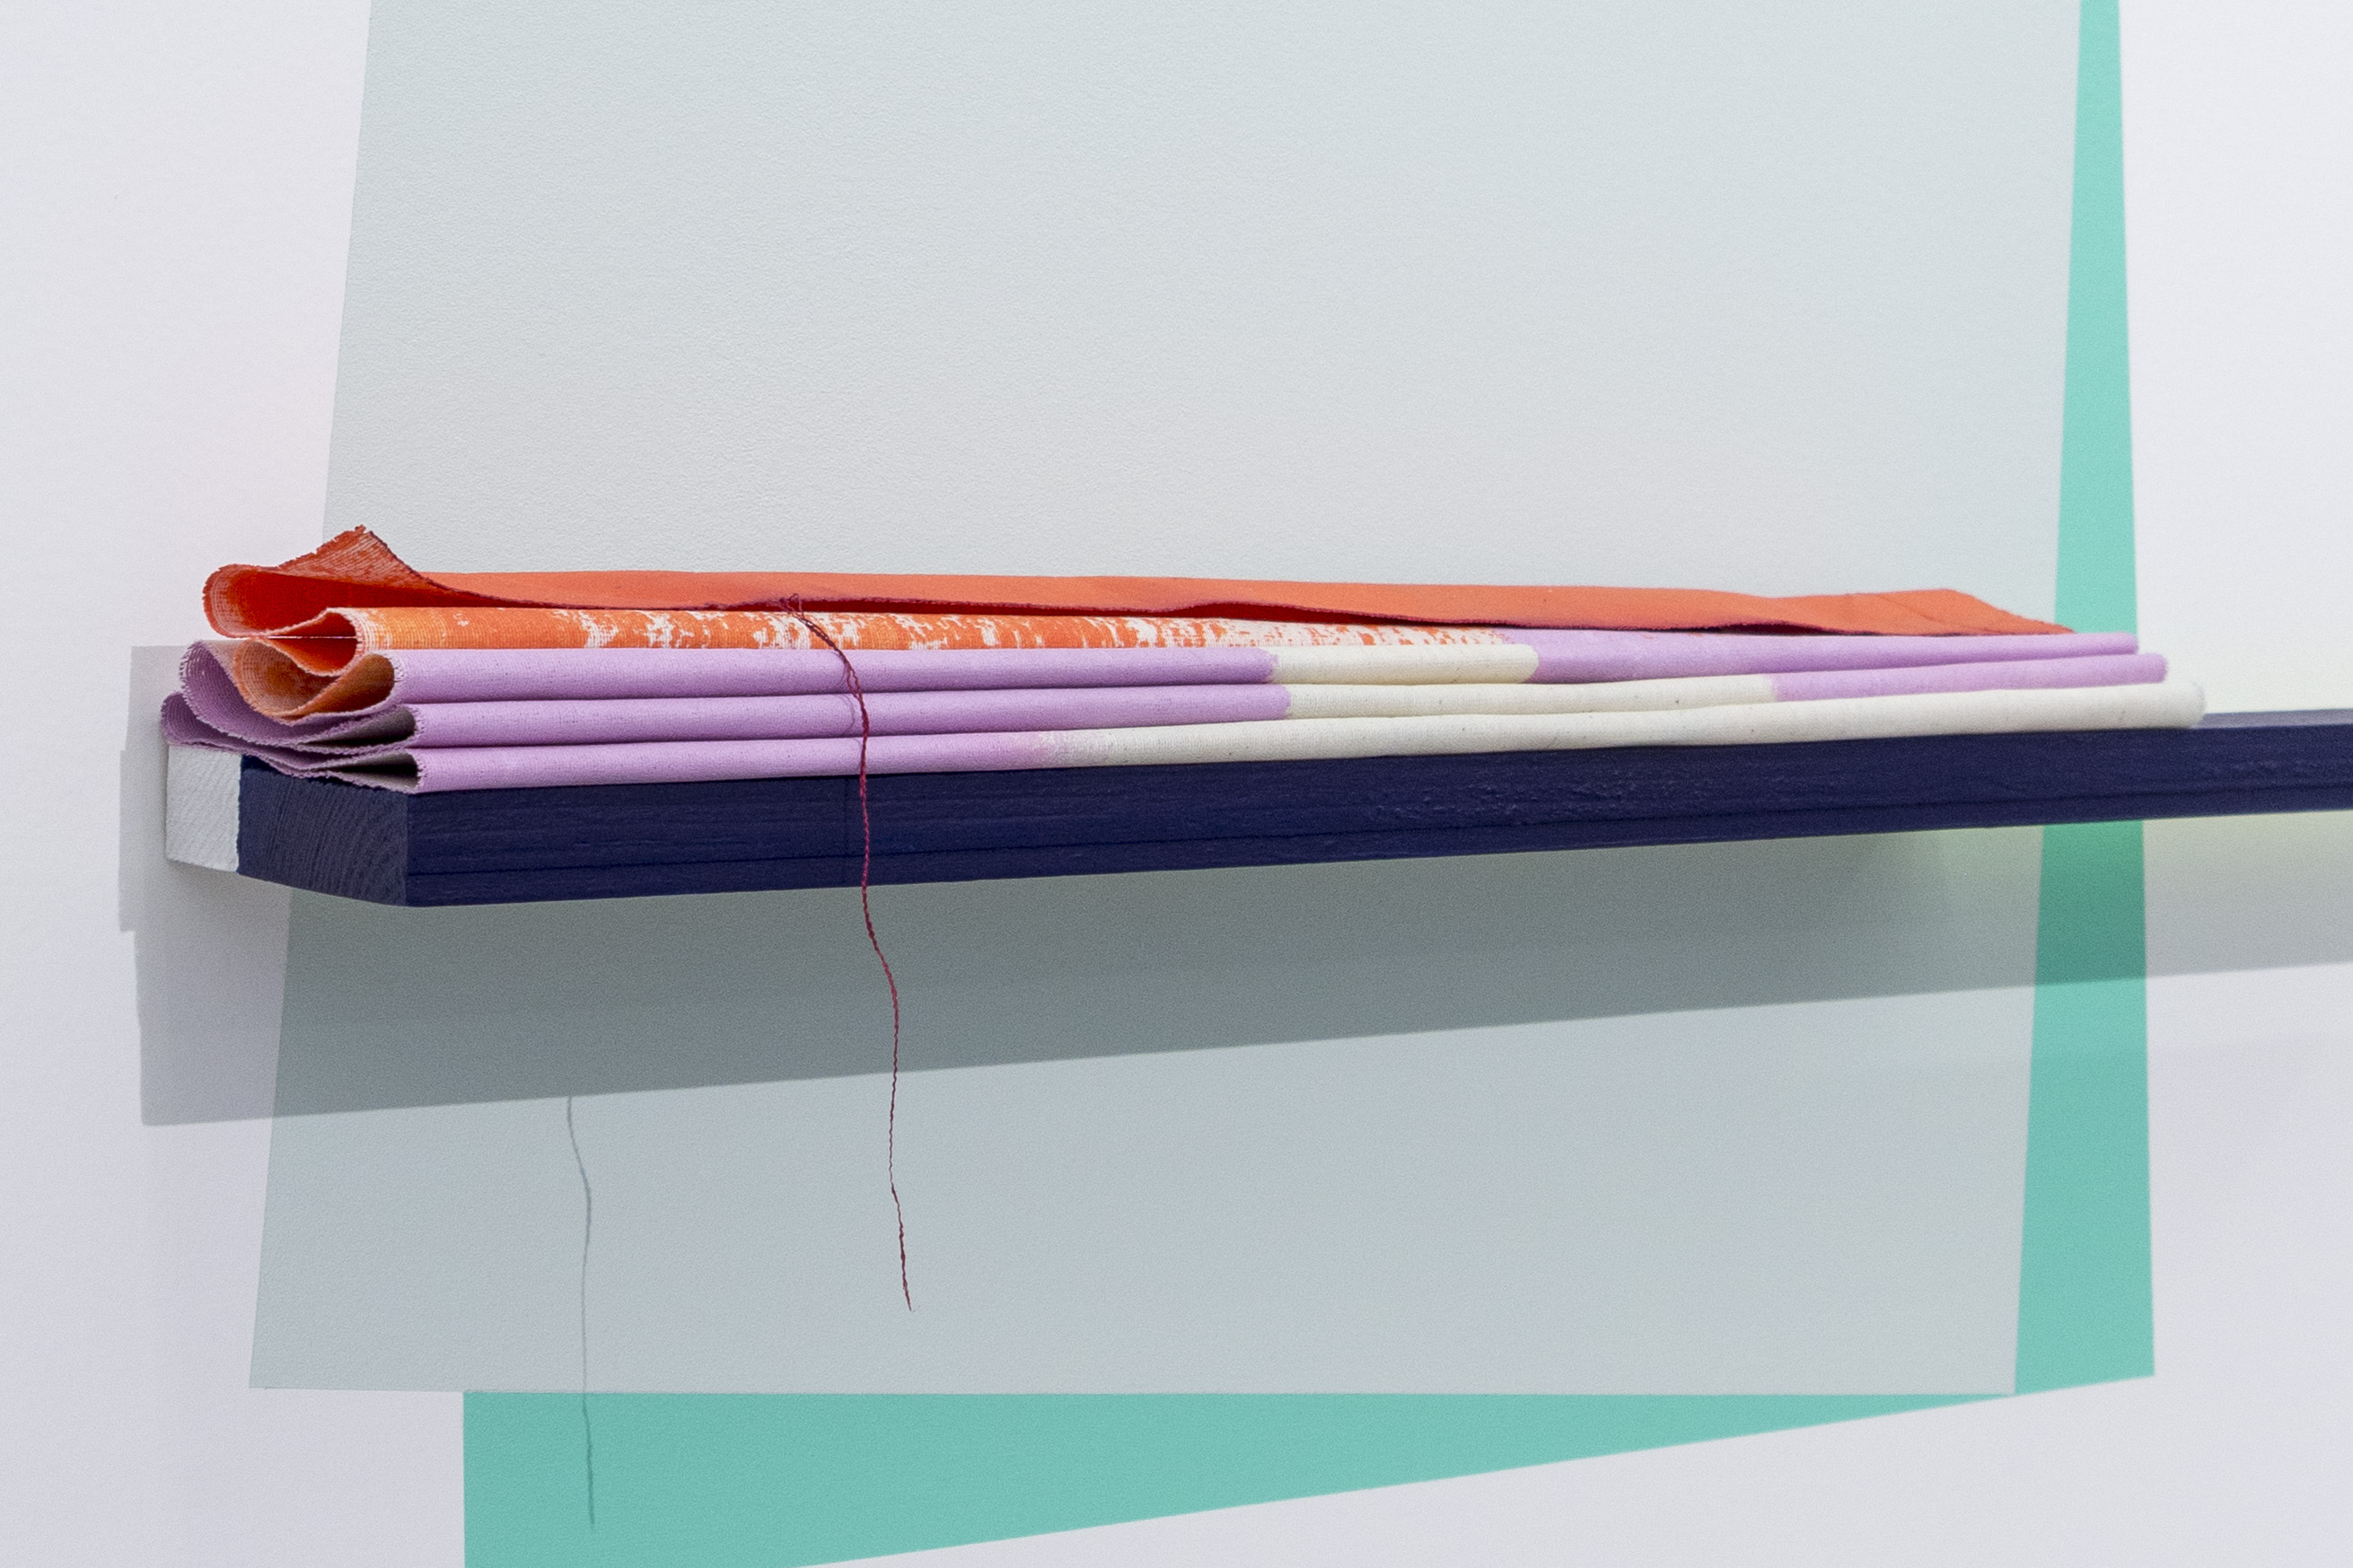 Ingunn_Painted Angles (folded canvas)_2